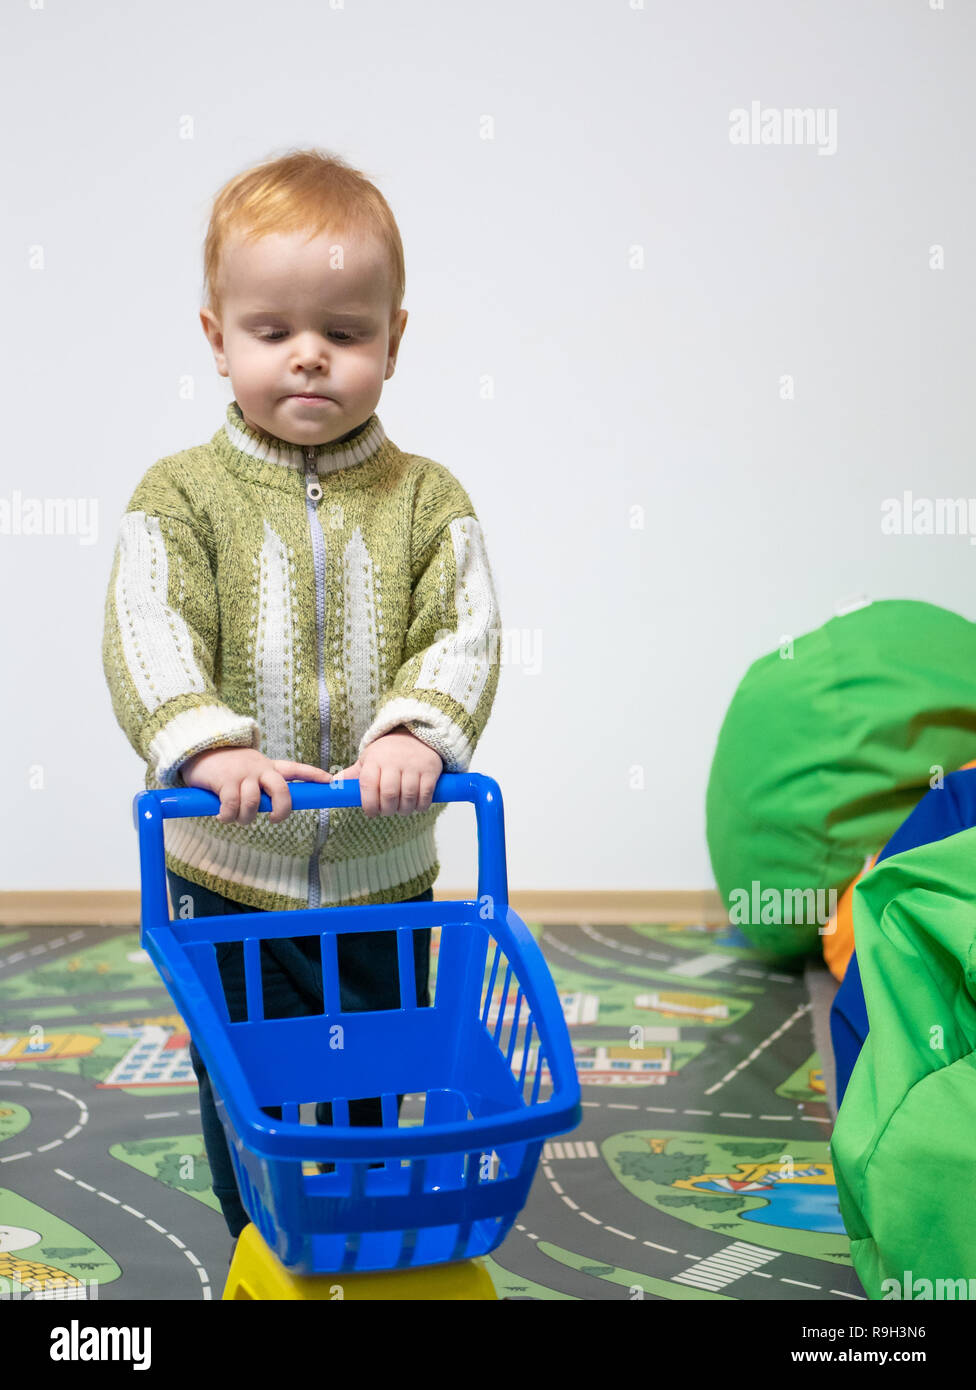 cute little boy holding toy shopping cart at indoor playground room. privat preschool kindergarten concept - Stock Image